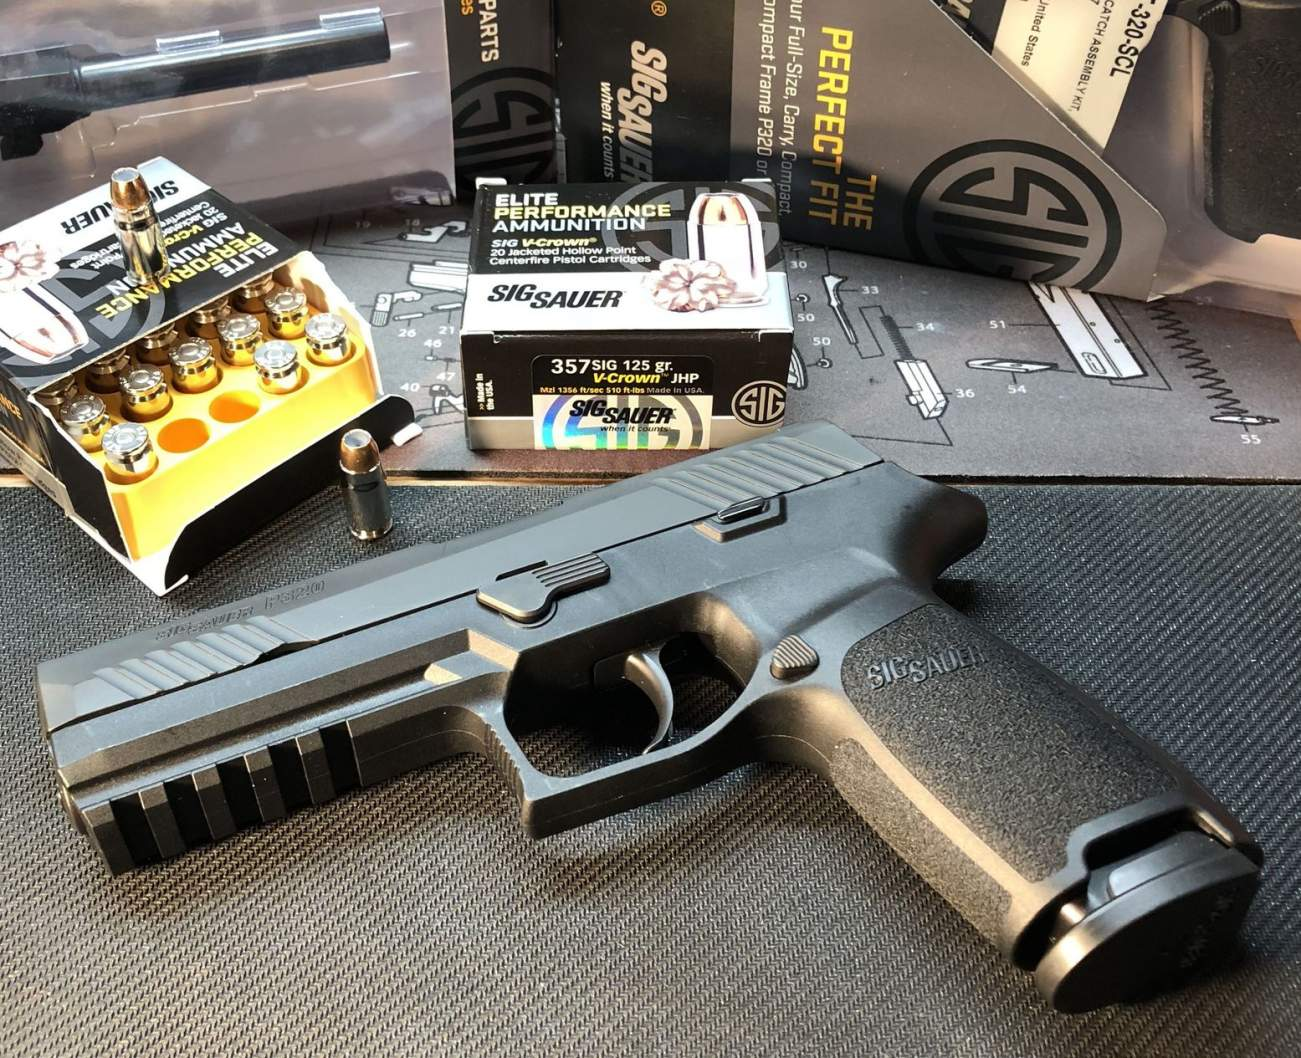 Sig Sauer Is Looking to Make Big Changes to Its Guns